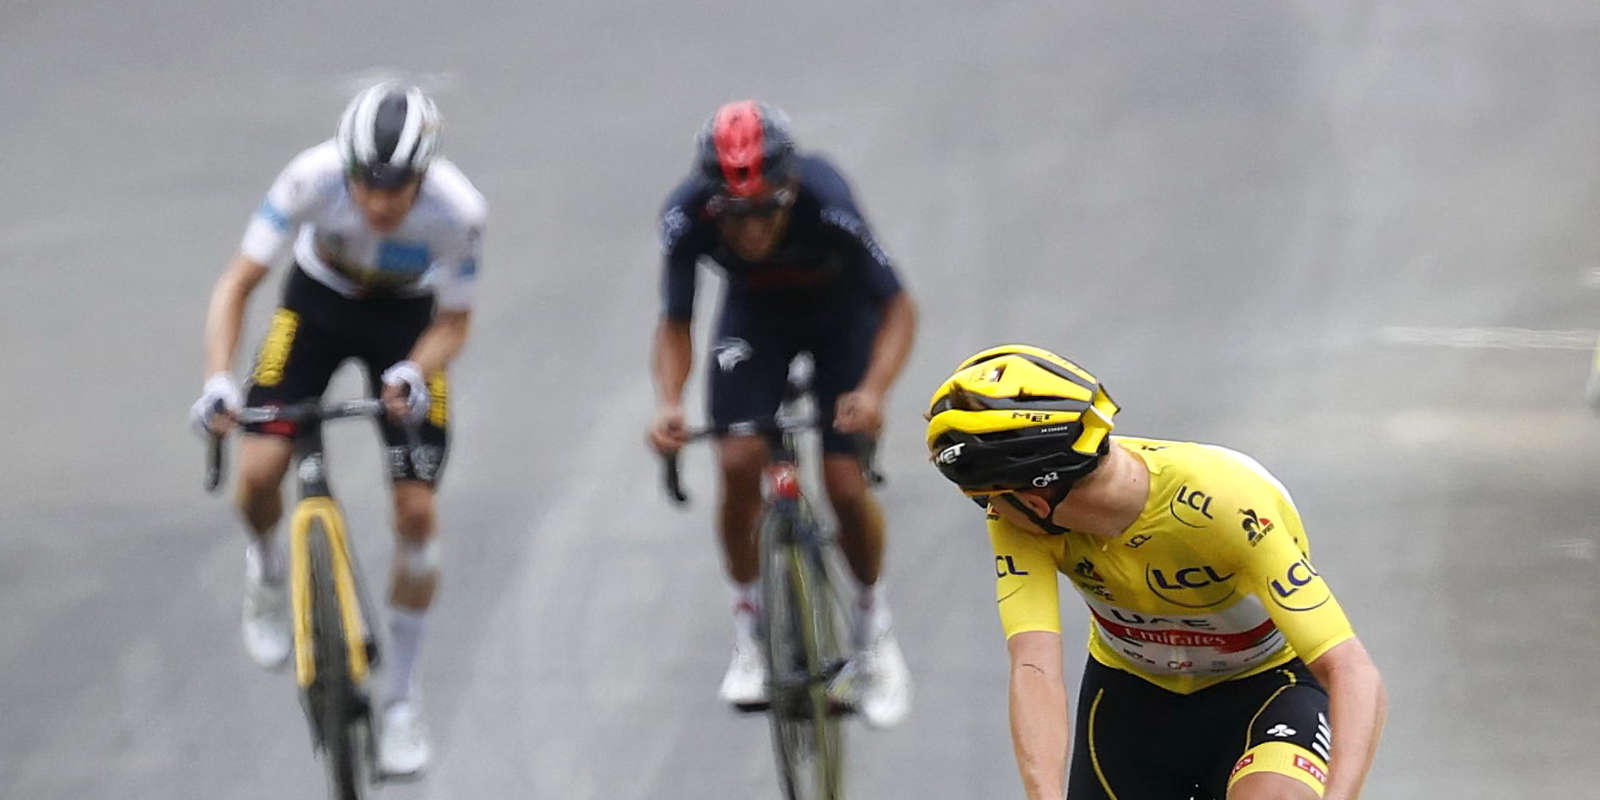 Team UAE Emirates' Tadej Pogacar of Slovenia wearing the overall leader's yellow jersey looks back before crossing the finish line during the 18th stage of the 108th edition of the Tour de France cycling race, 129 km between Pau and Luz Ardiden, on July 15, 2021. / AFP / Thomas SAMSON